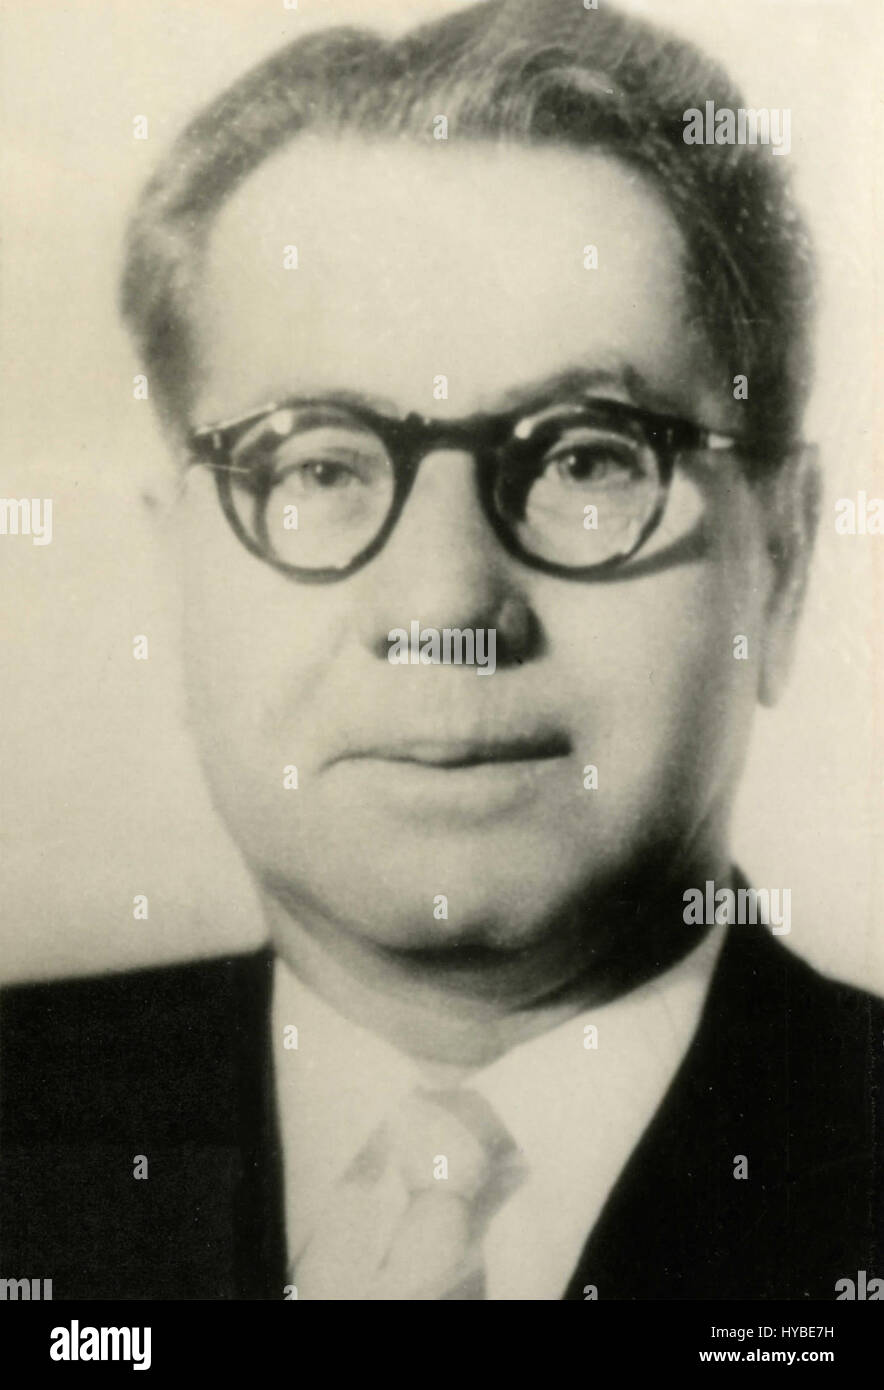 Mr. Serdjuk, member of the Soviet Presidium, USSR - Stock Image